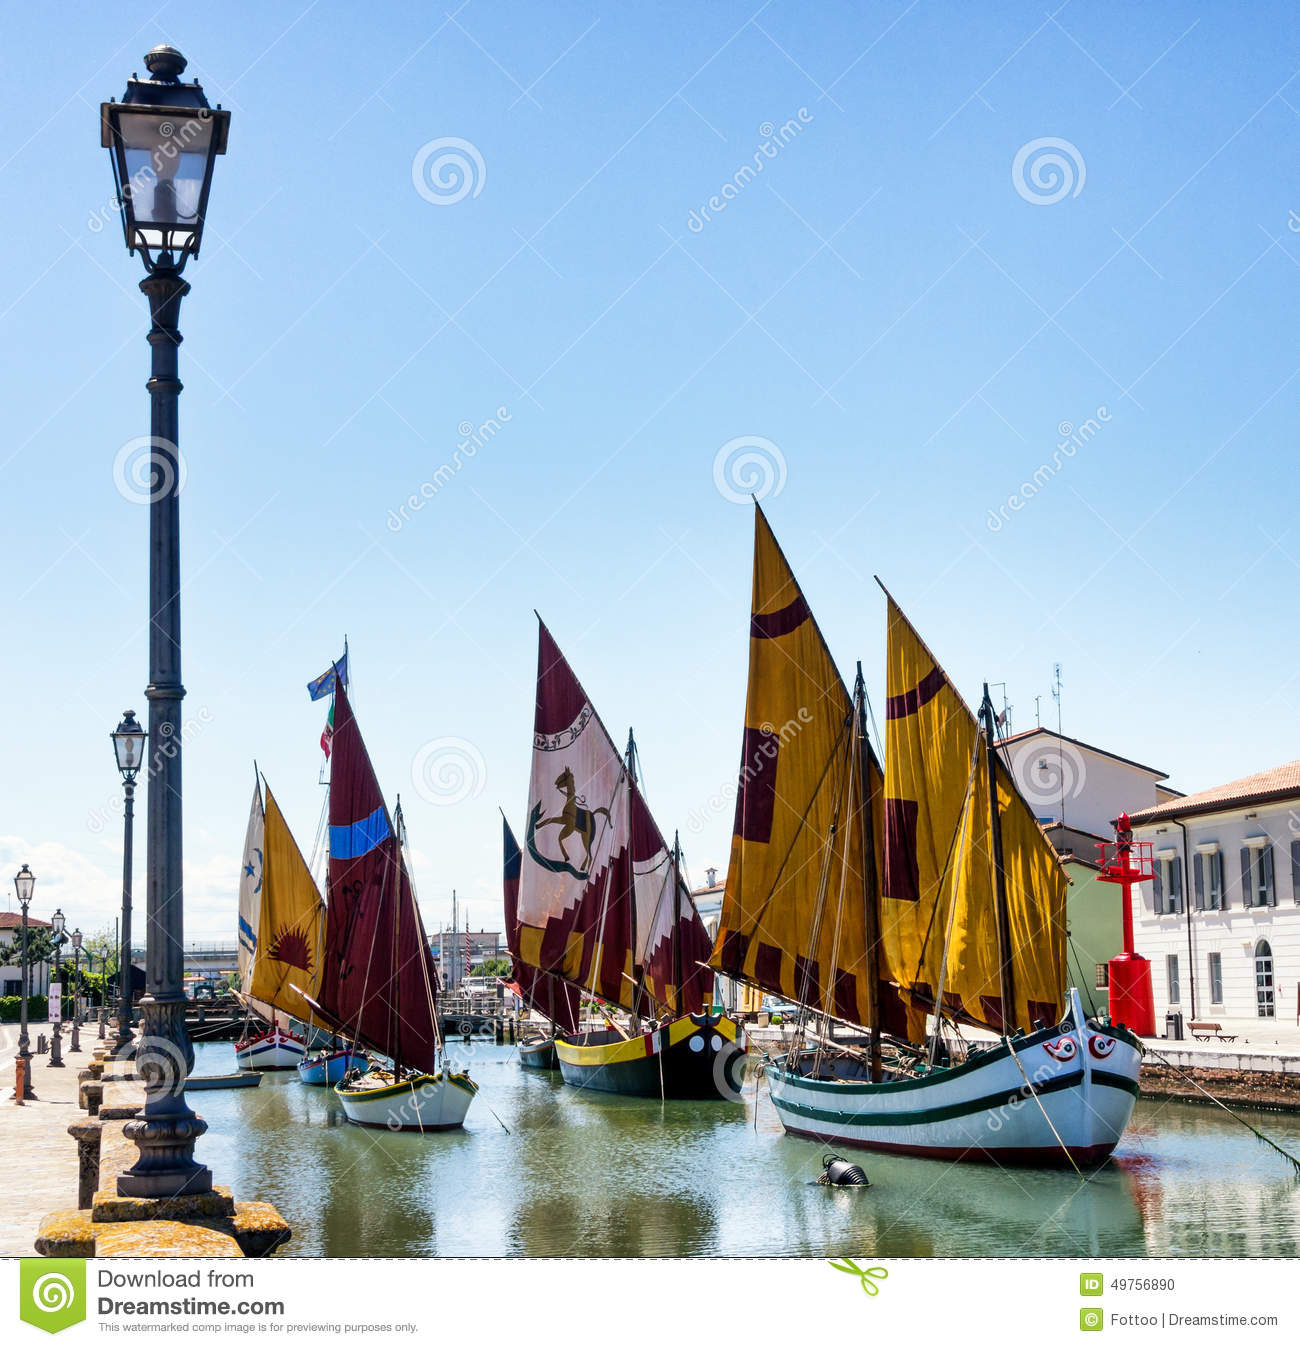 Old sailboats stock photo  Image of outdoors, place